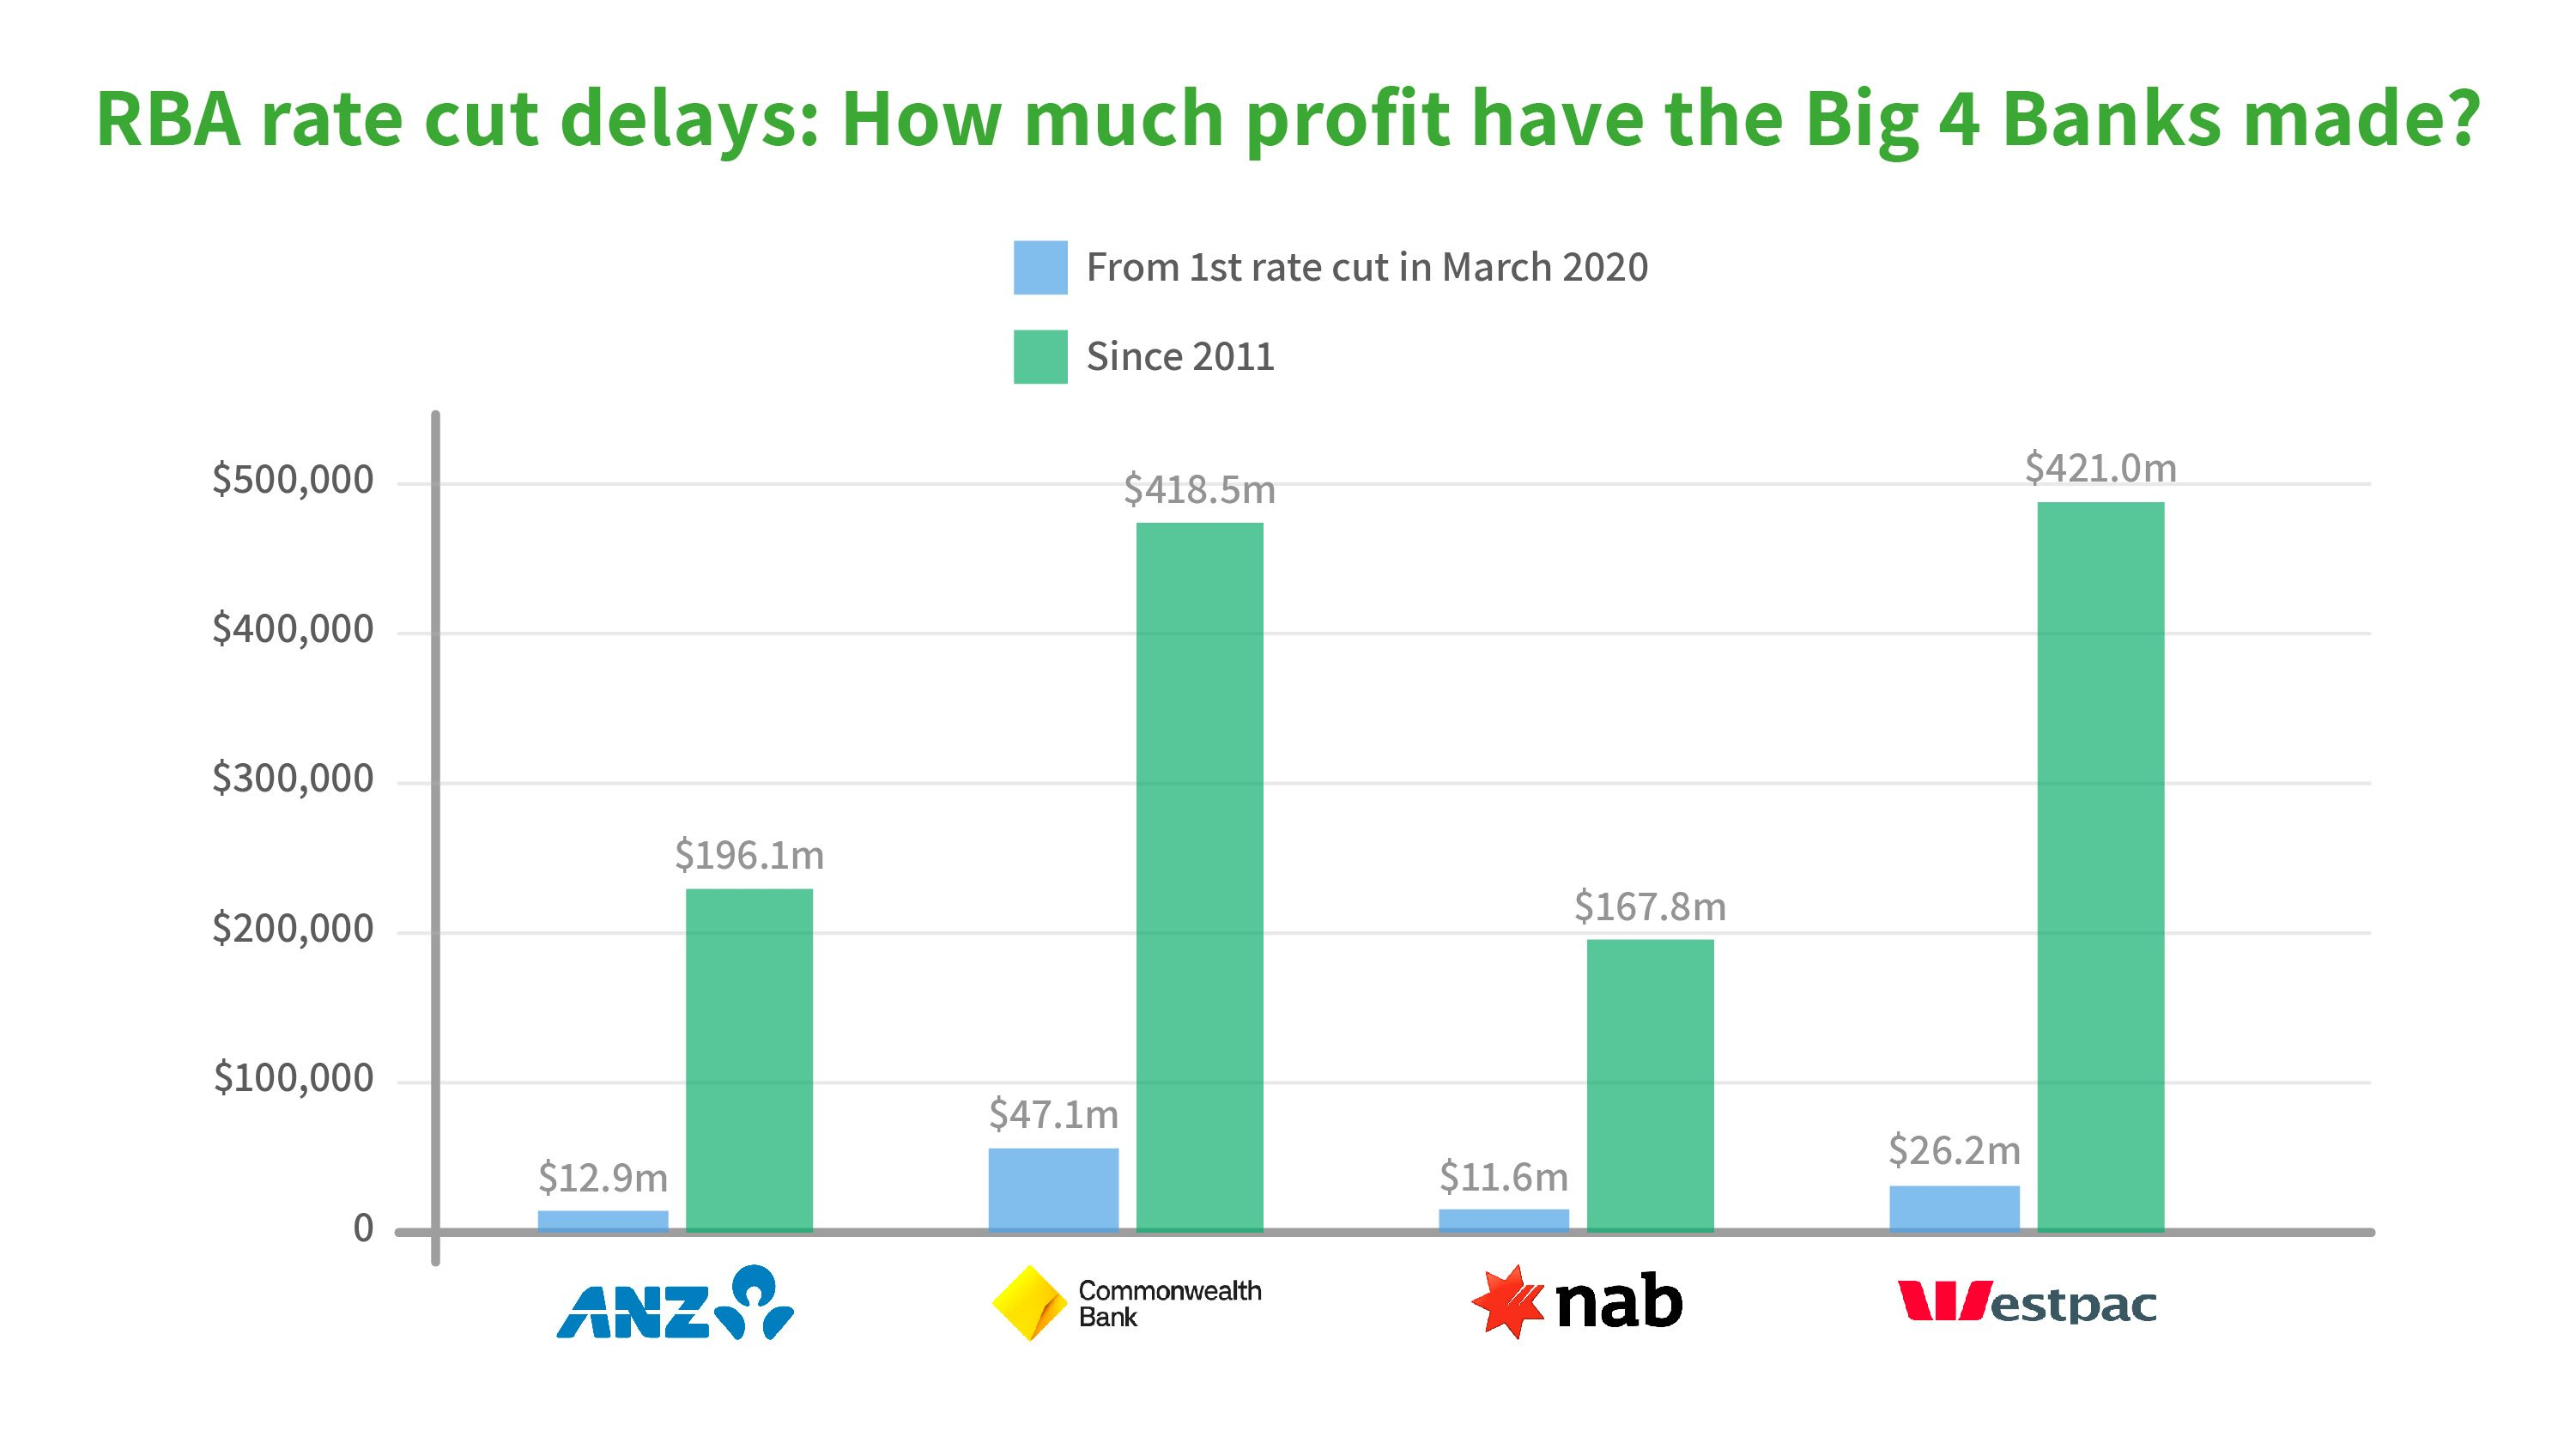 RBA rate cut delays: how much profit have the big 4 banks made?